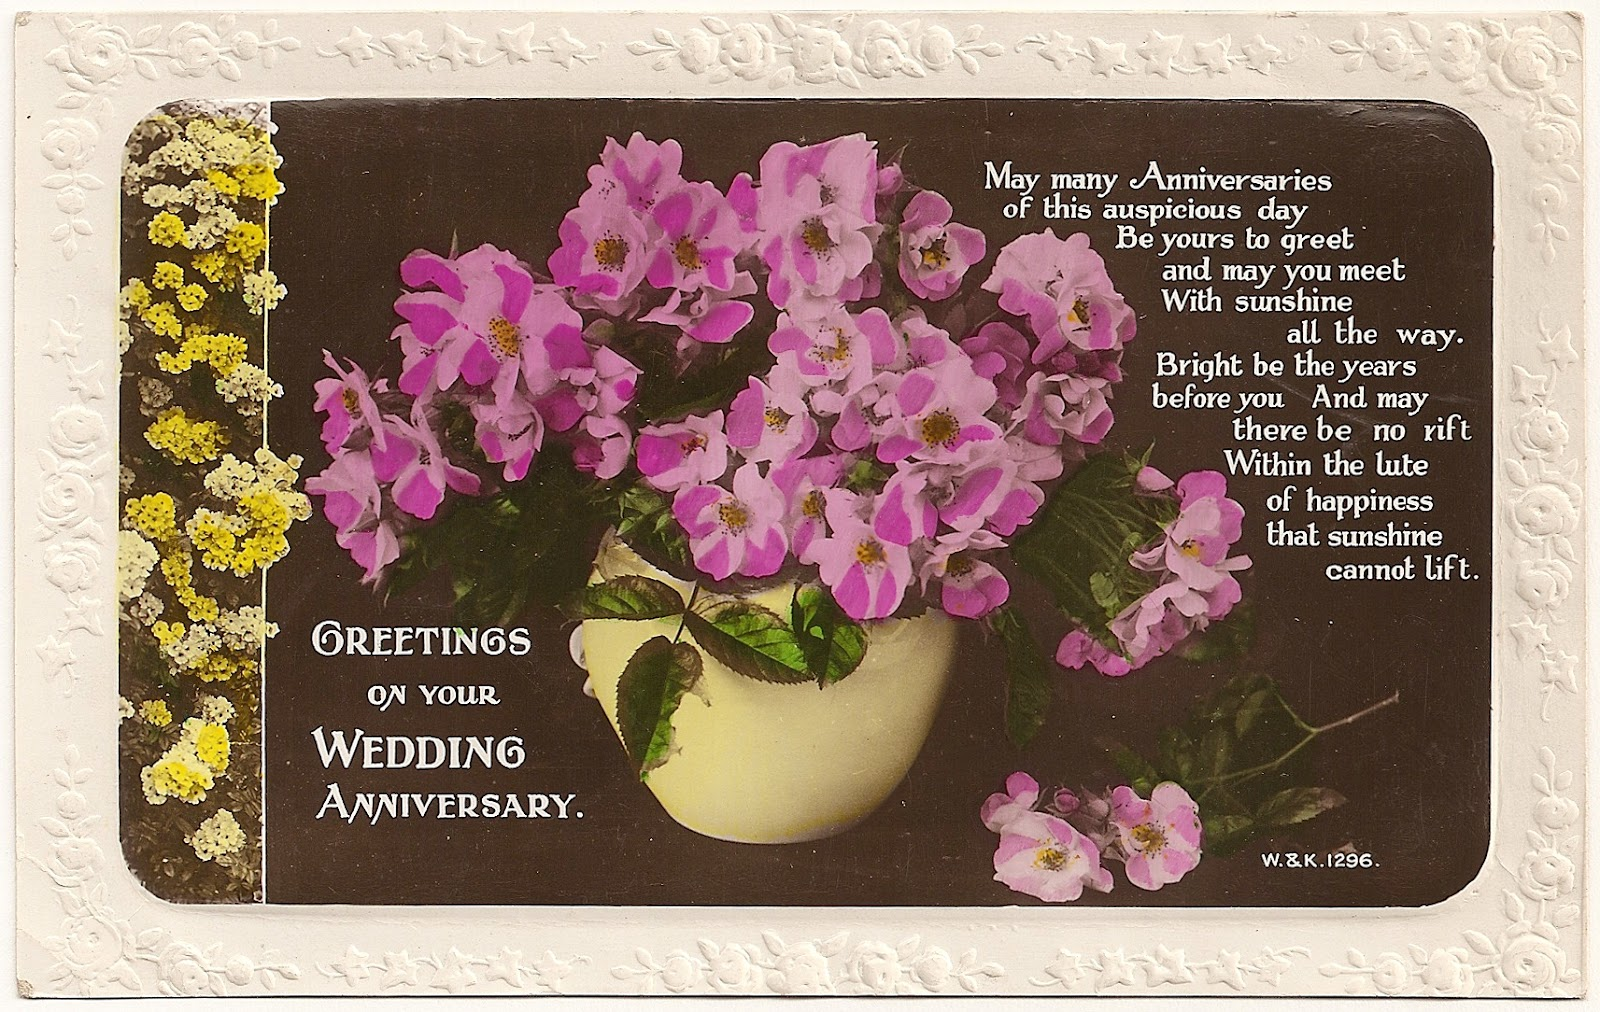 Archive Greetings On Your Wedding Anniversary